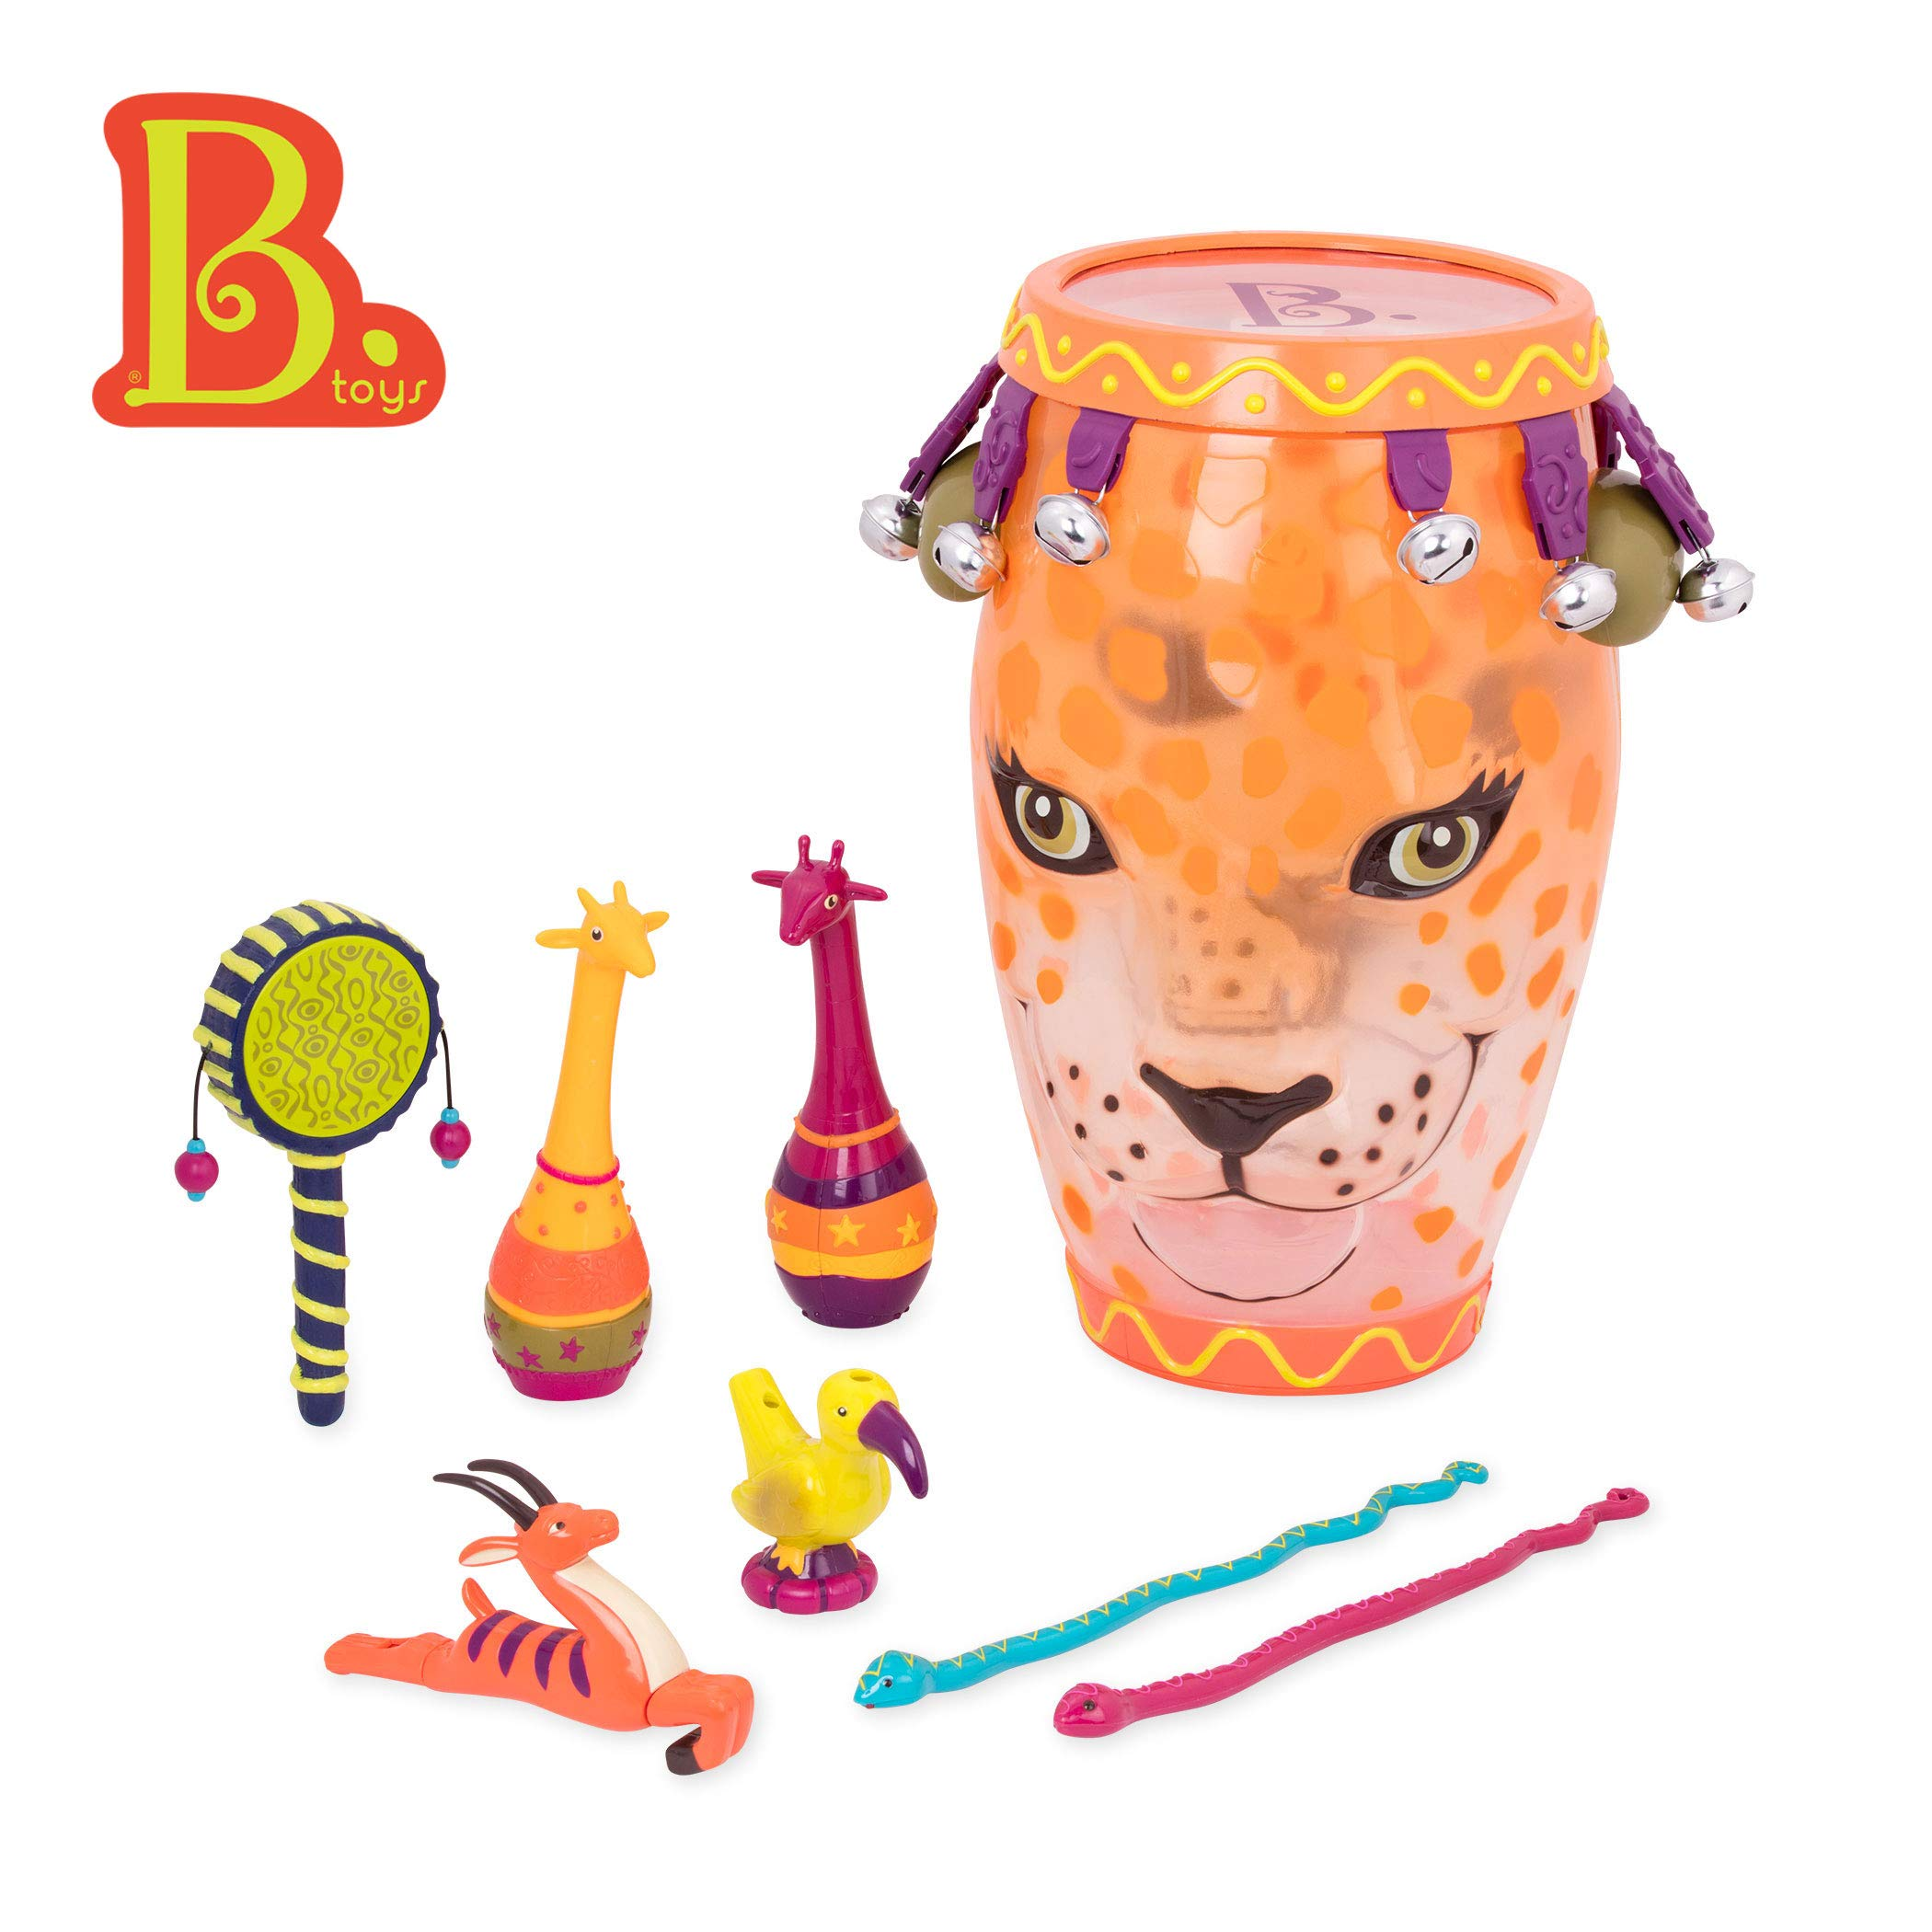 B. Toys - B. Jungle Jam - Toy Drum Set (Includes 9 Percussion Instruments for Kids) by B. toys by Battat